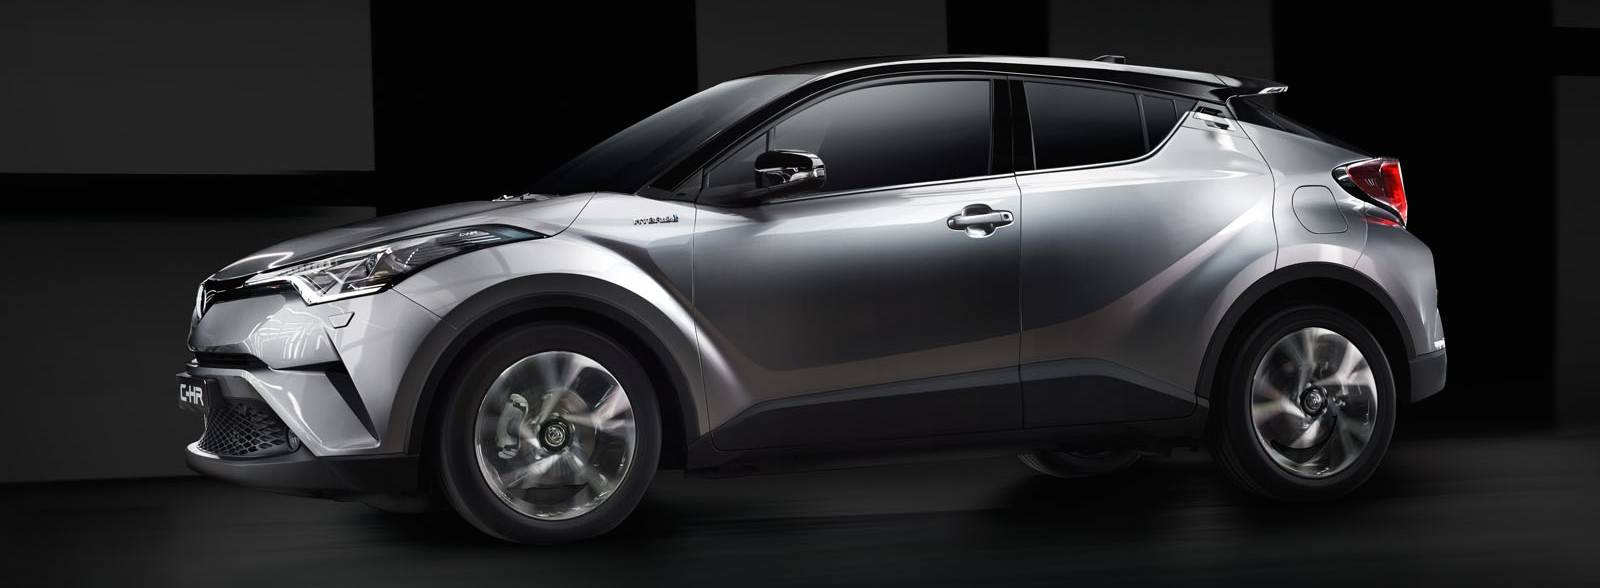 Toyota C-HR, exterior Silver, side view, black background, close-up view.